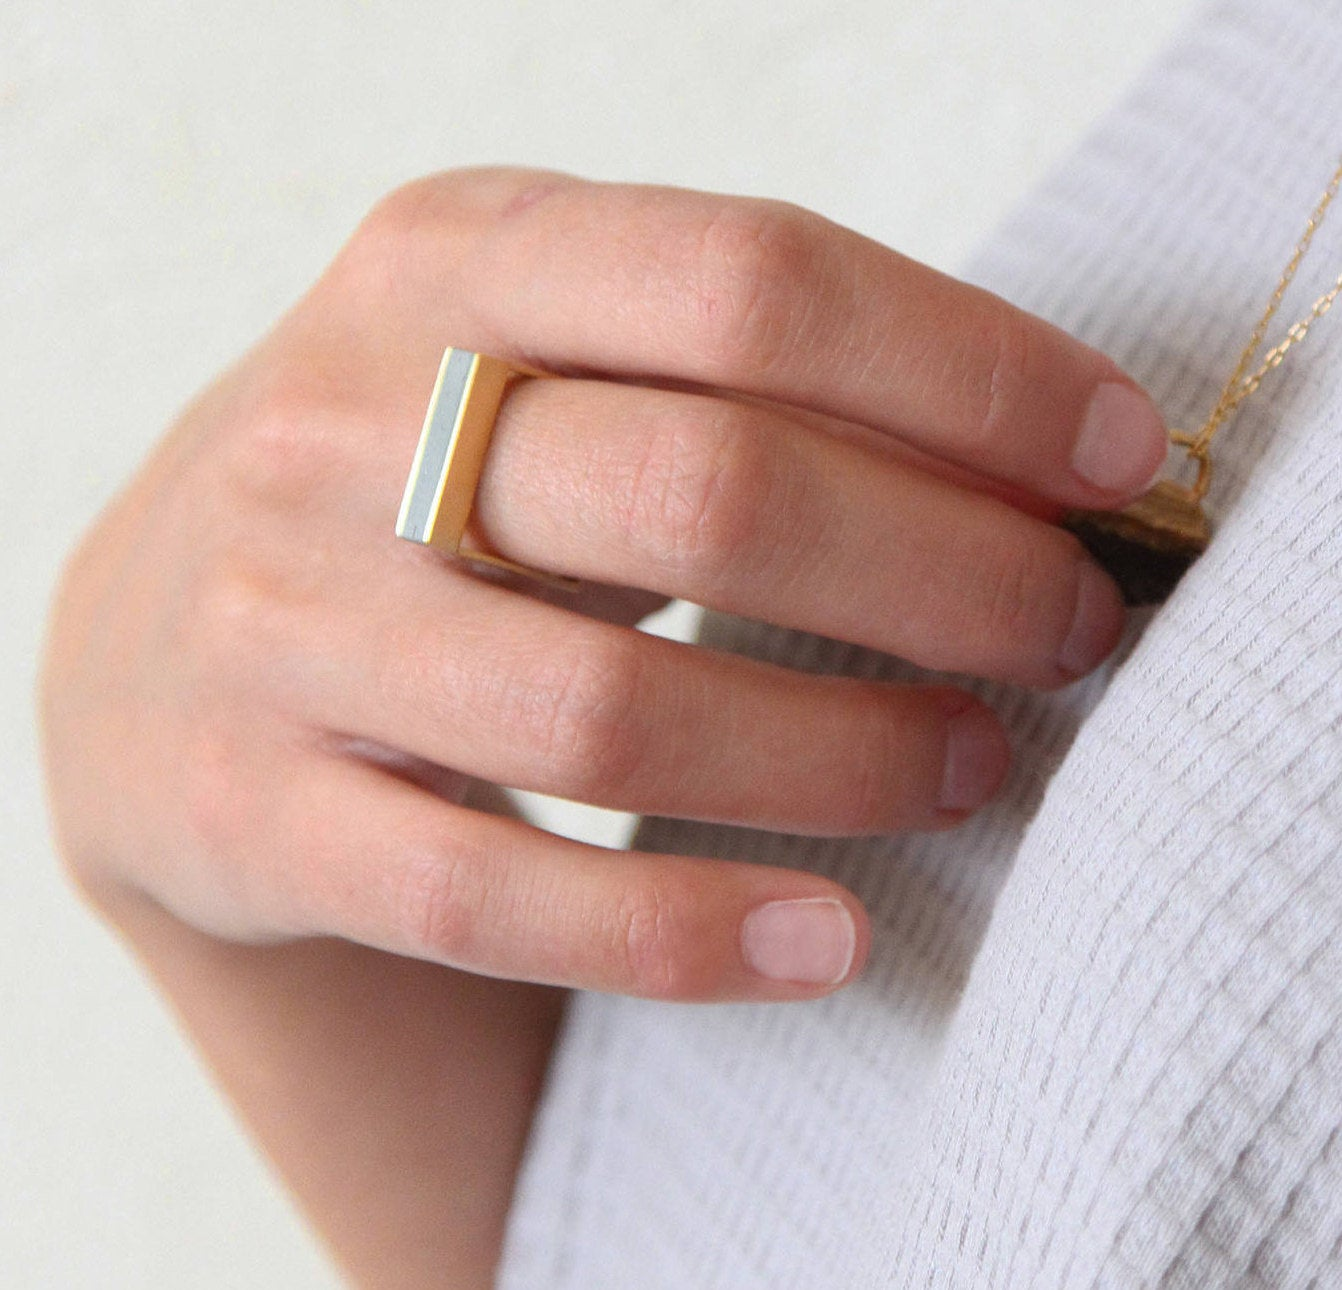 Gold concrete stripe Ring, Geometric Concrete Ring, Frame Ring, Delicate bar Ring, modern line ring, Minimalist Ring, rectangle ring - hs